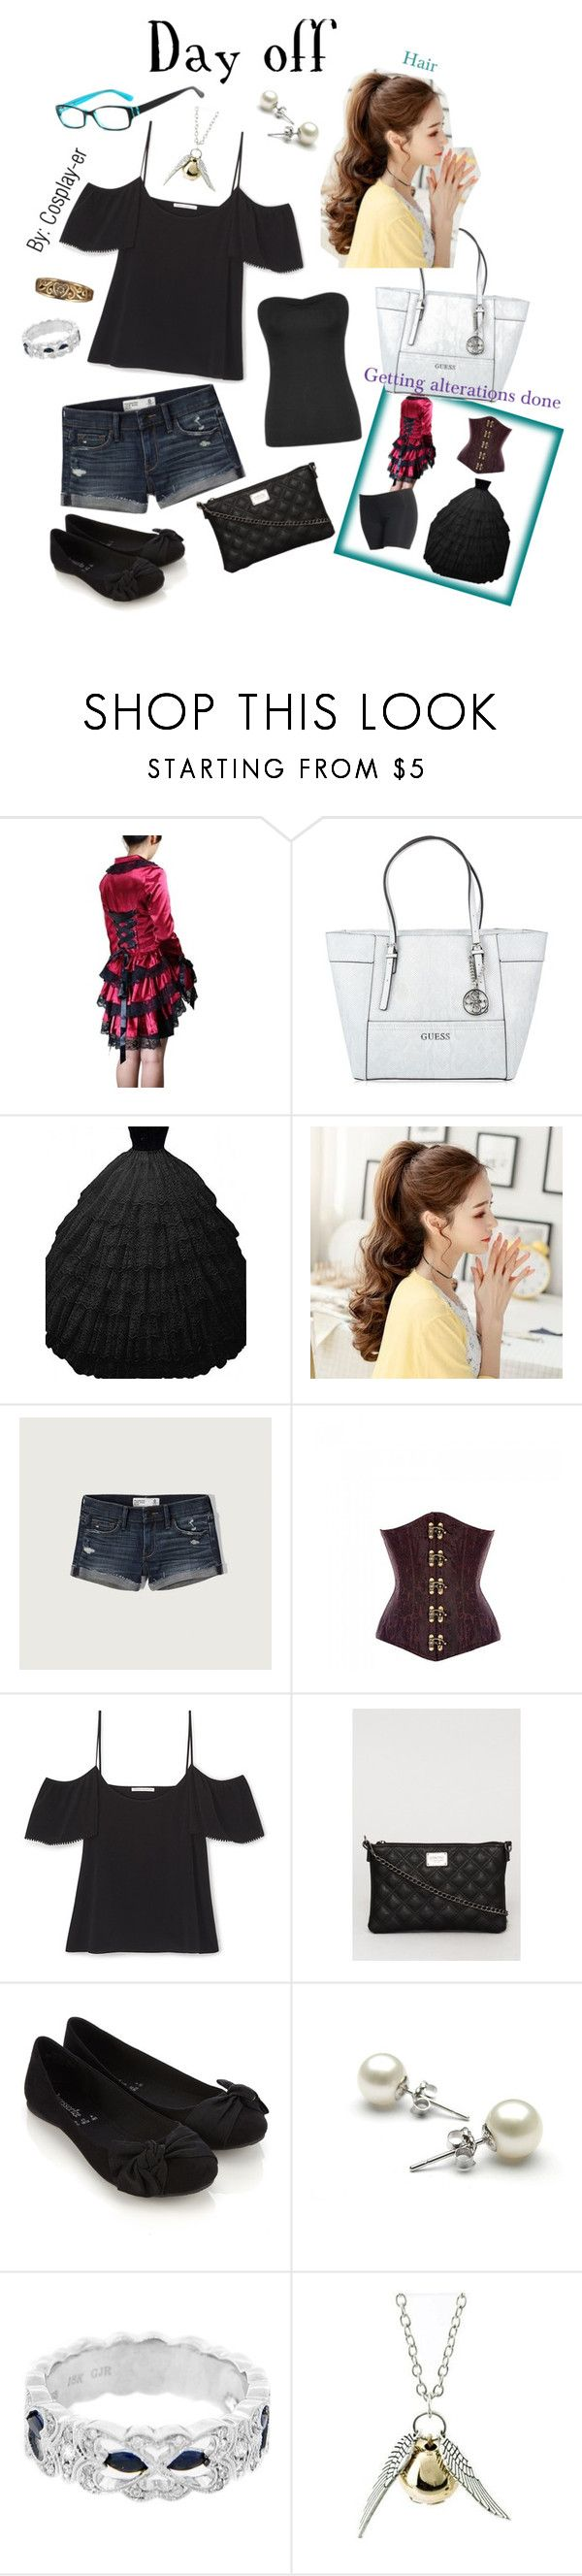 """""""Day Off"""" by cosplay-er ❤ liked on Polyvore featuring GUESS, Abercrombie & Fitch, Accessorize and Quiksilver"""